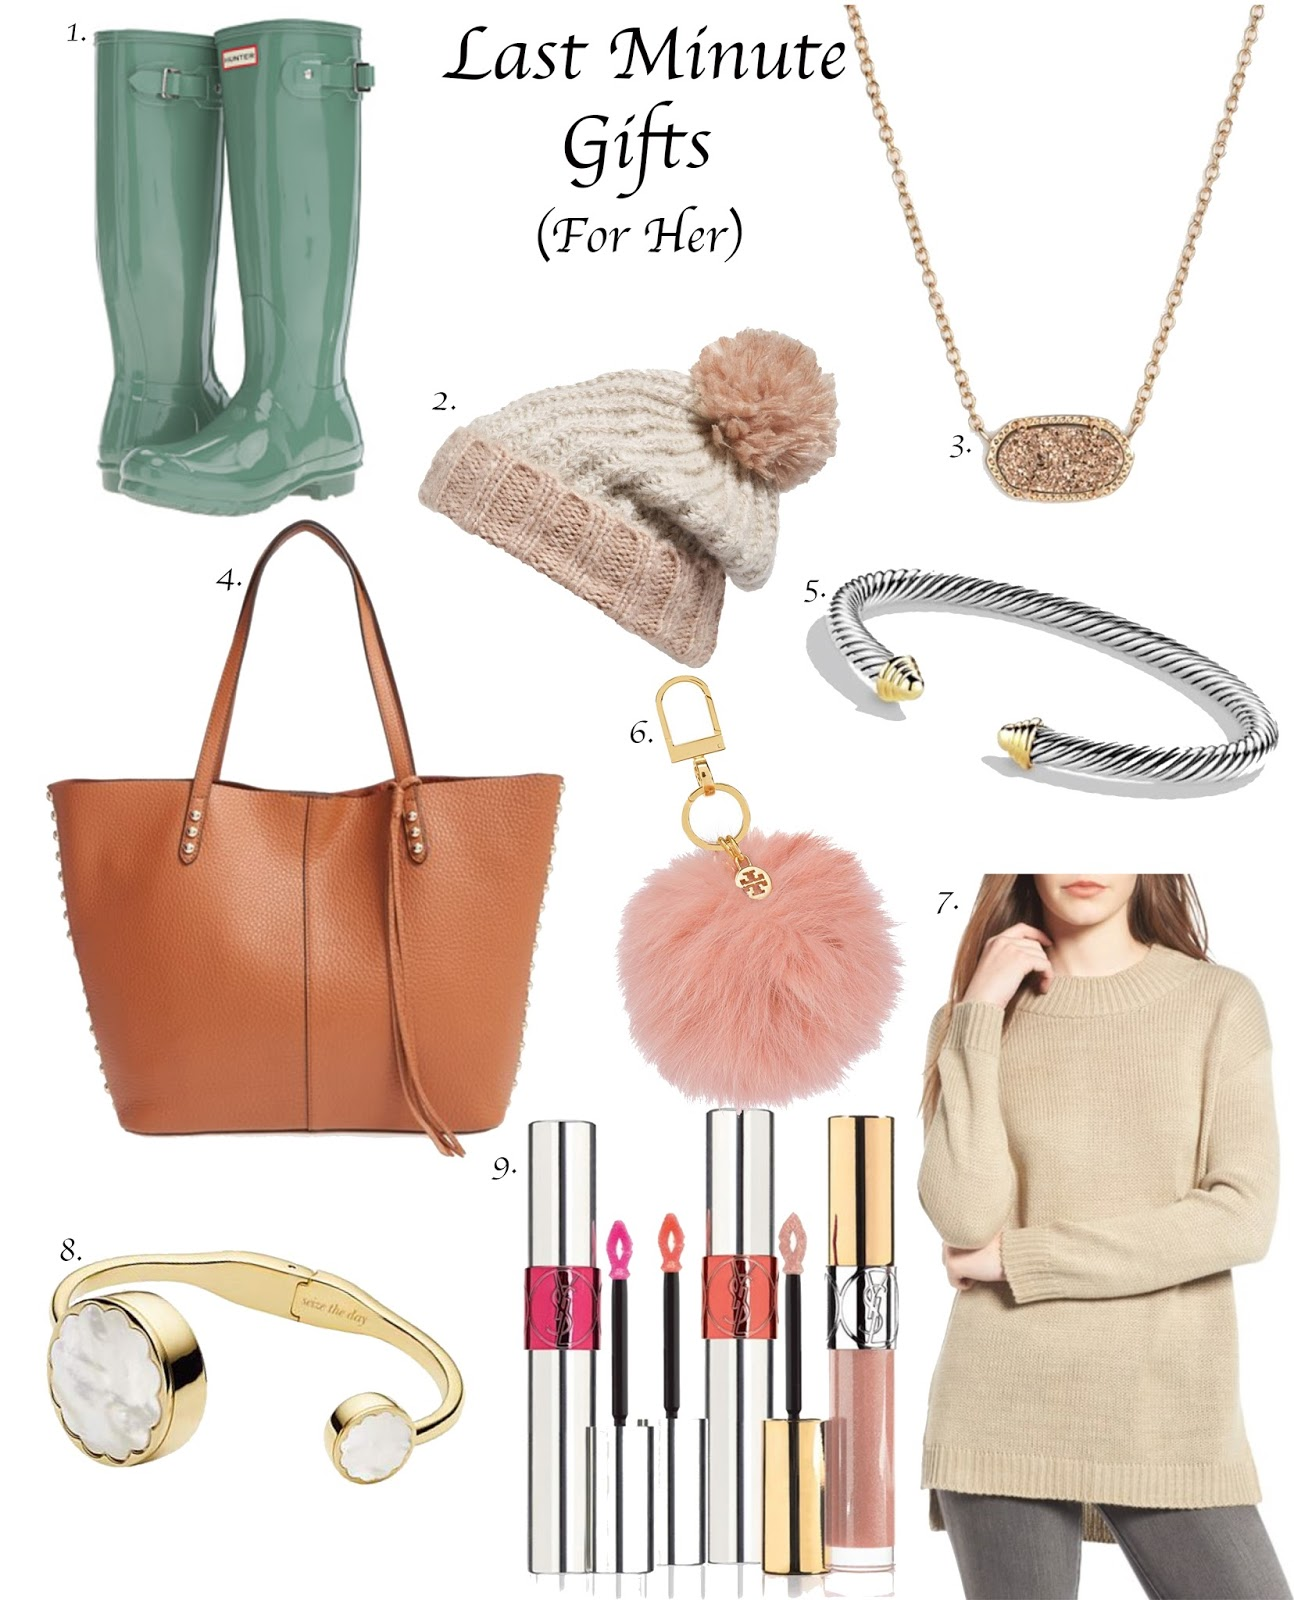 Gifts For Her - Something Delightful Blog